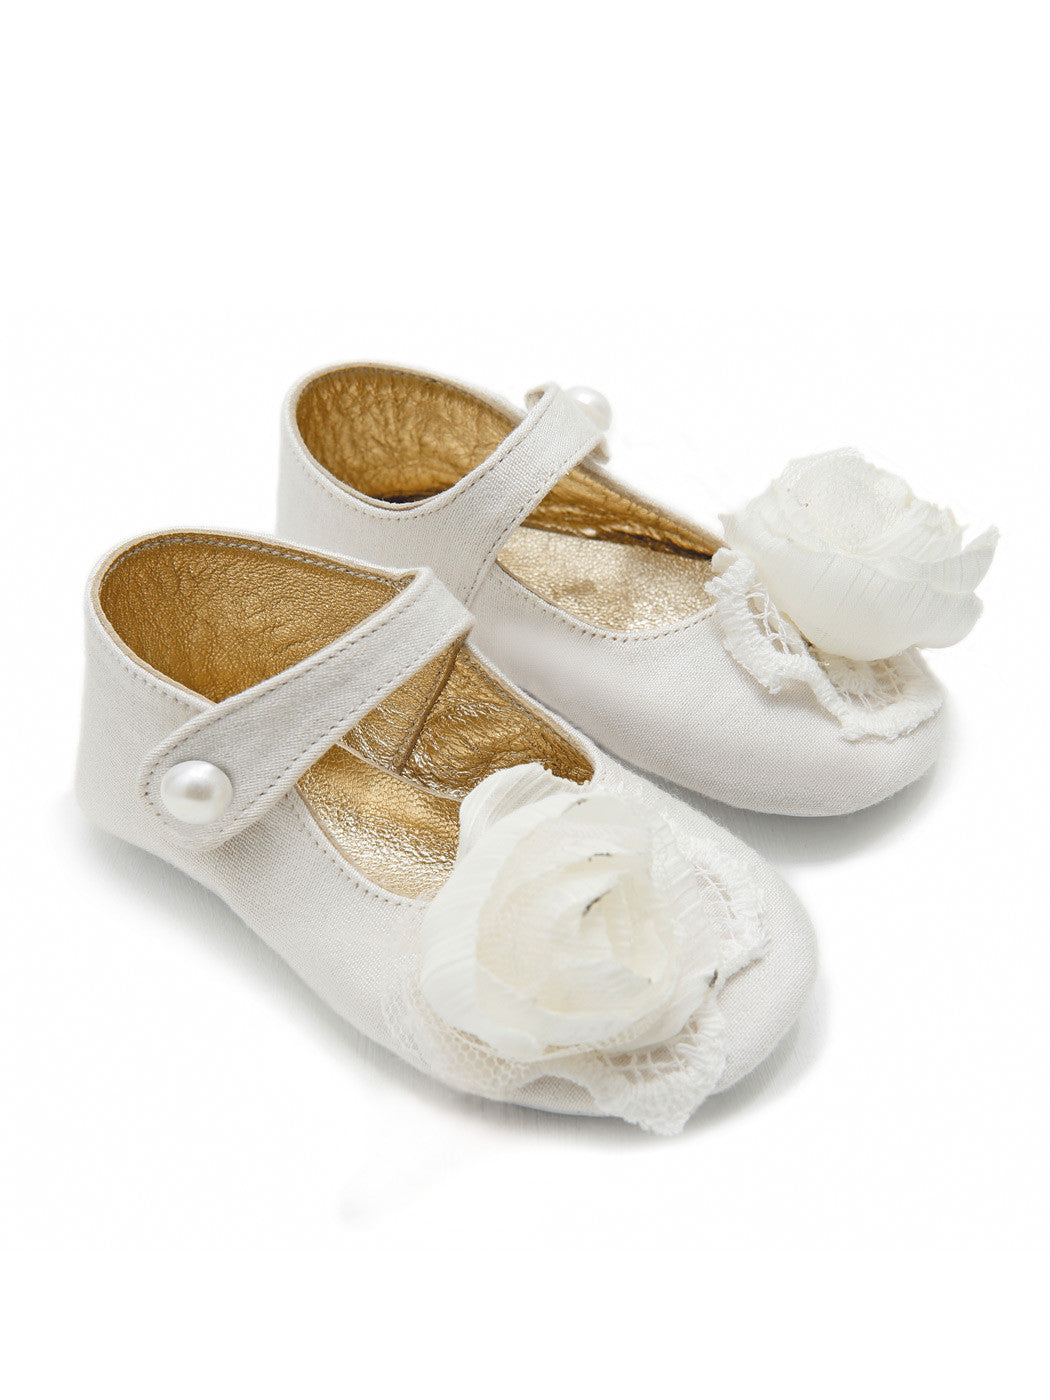 Amalthia baby shoes